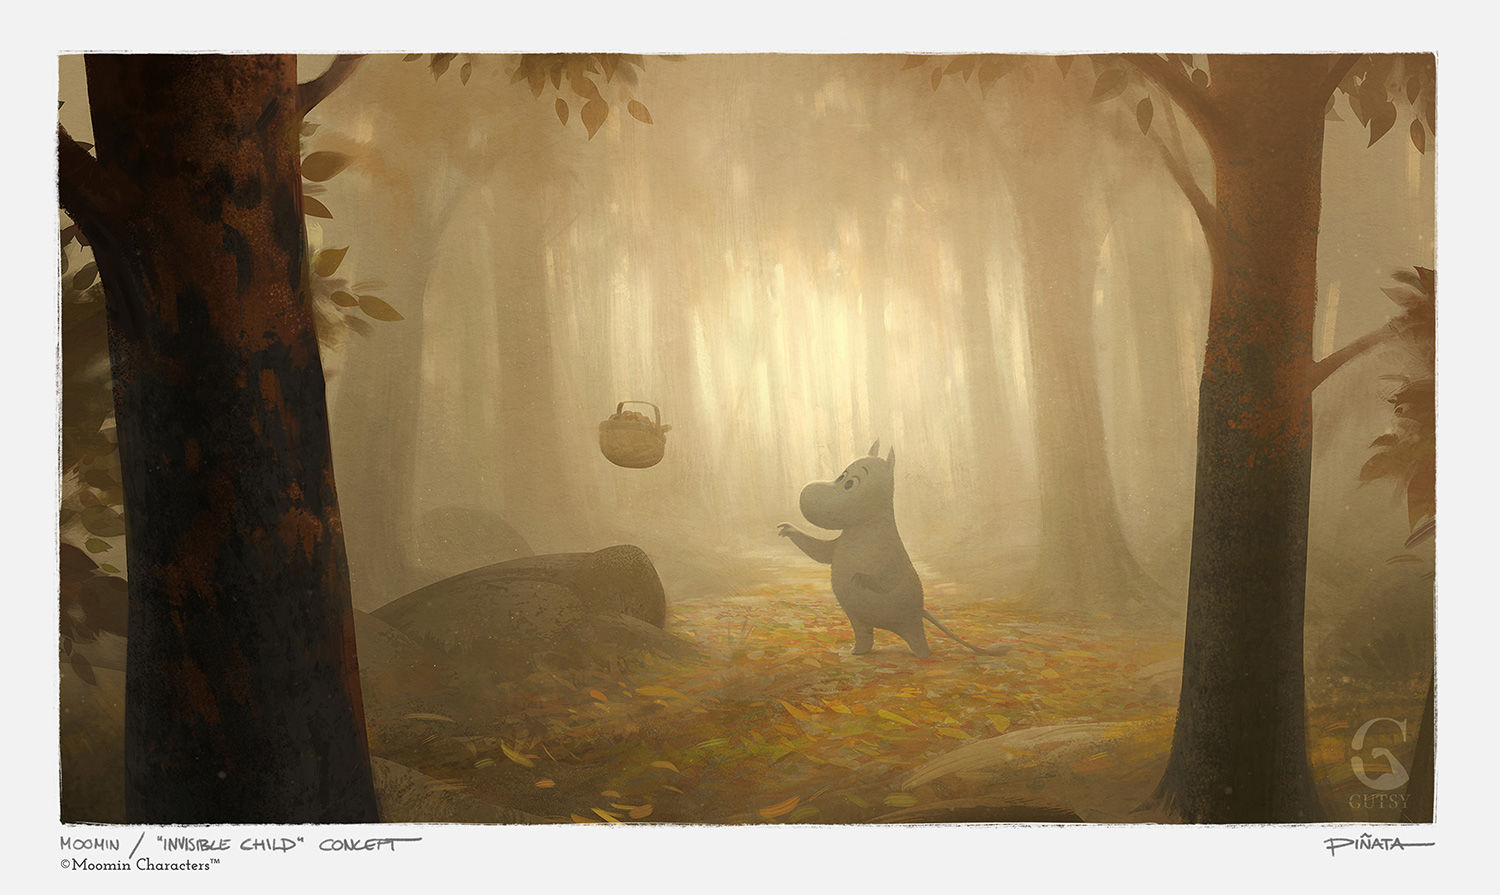 See beautiful concept art for the new Moomin animated TV show